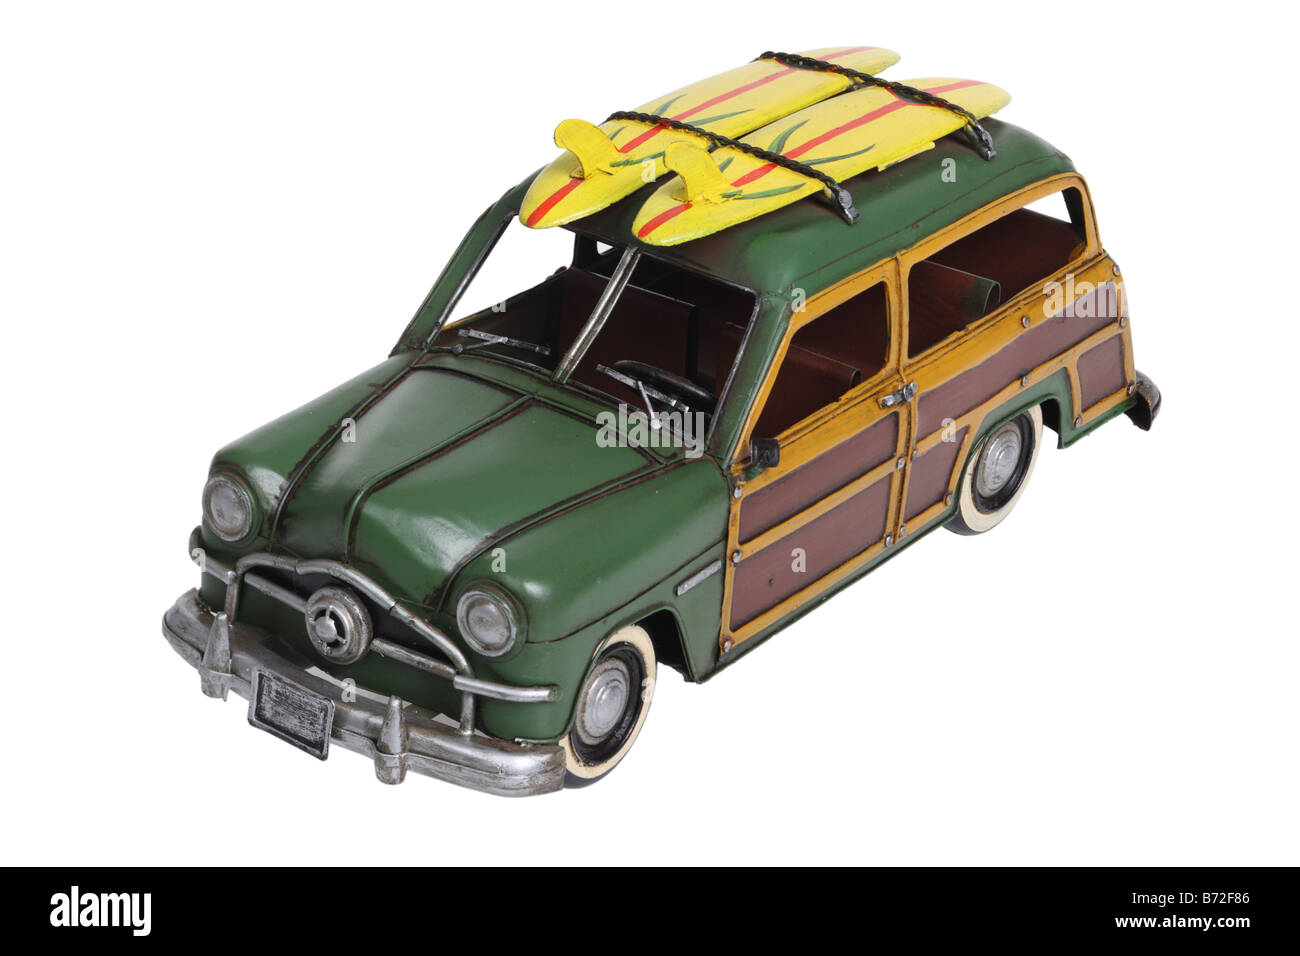 Classic woody surf automobile model cut out on white background - Stock Image